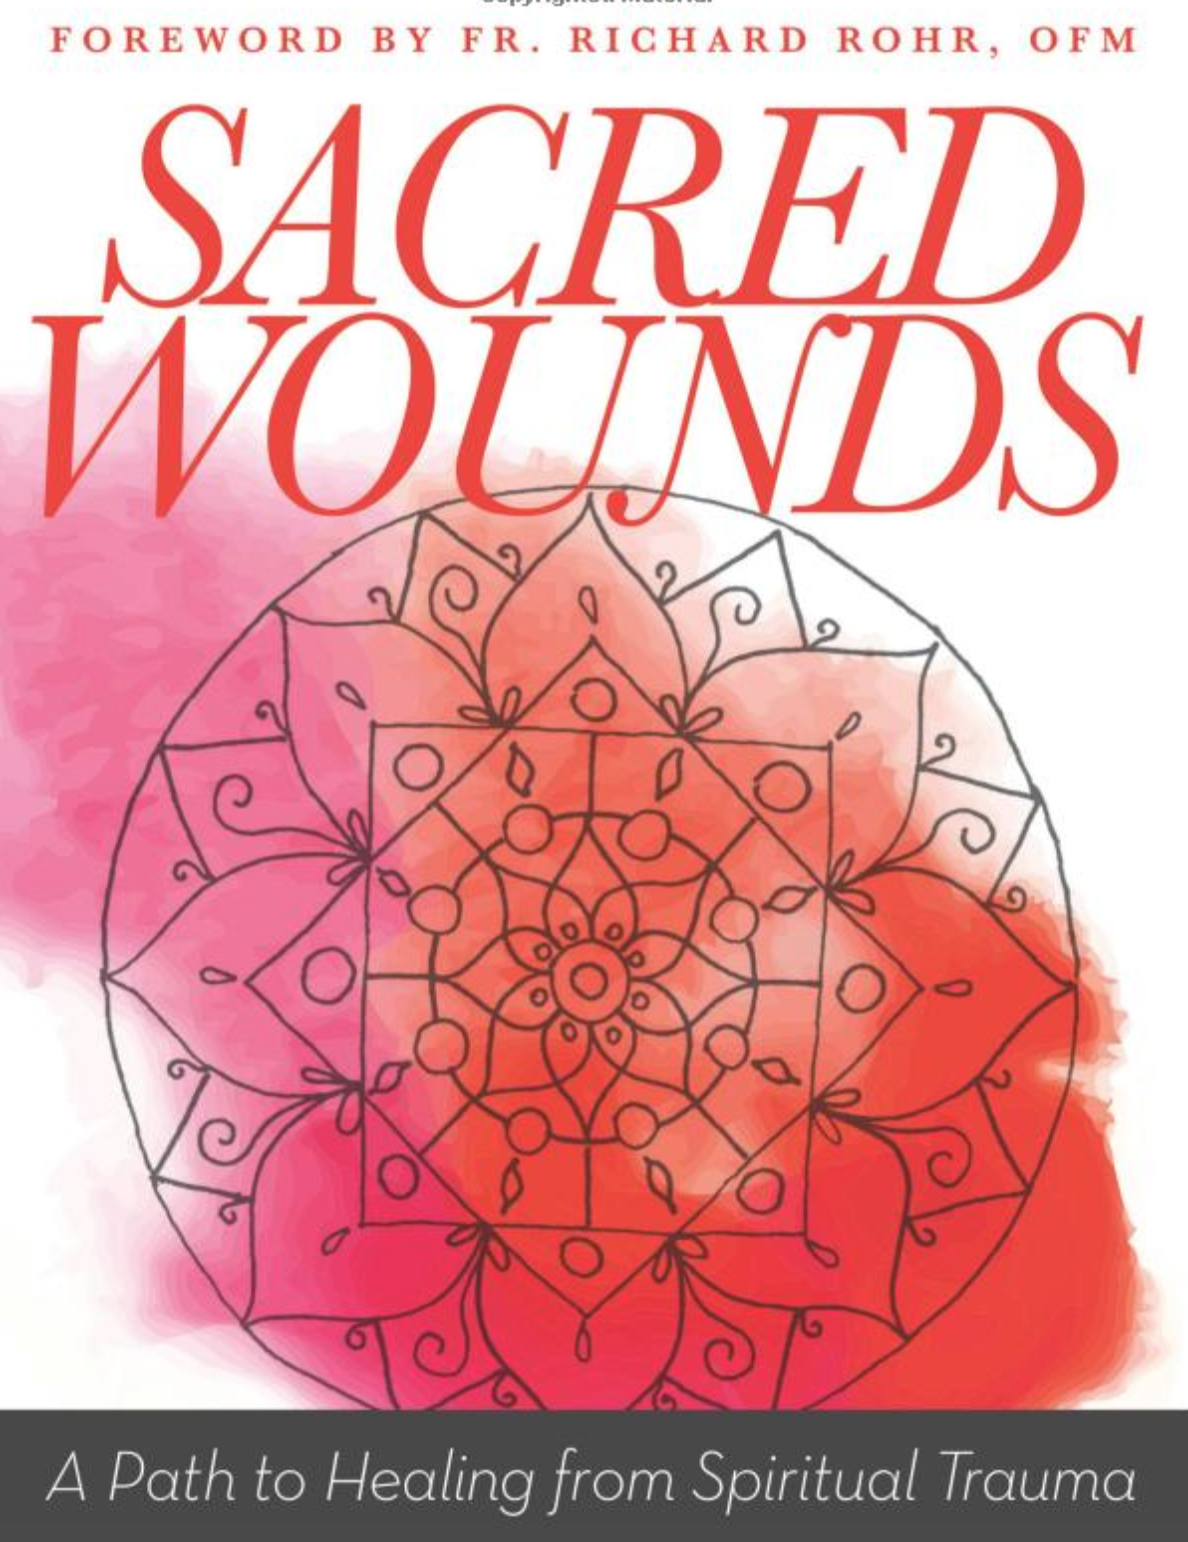 7 Books That Deal with Spiritual Abuse/Trauma, Doubt